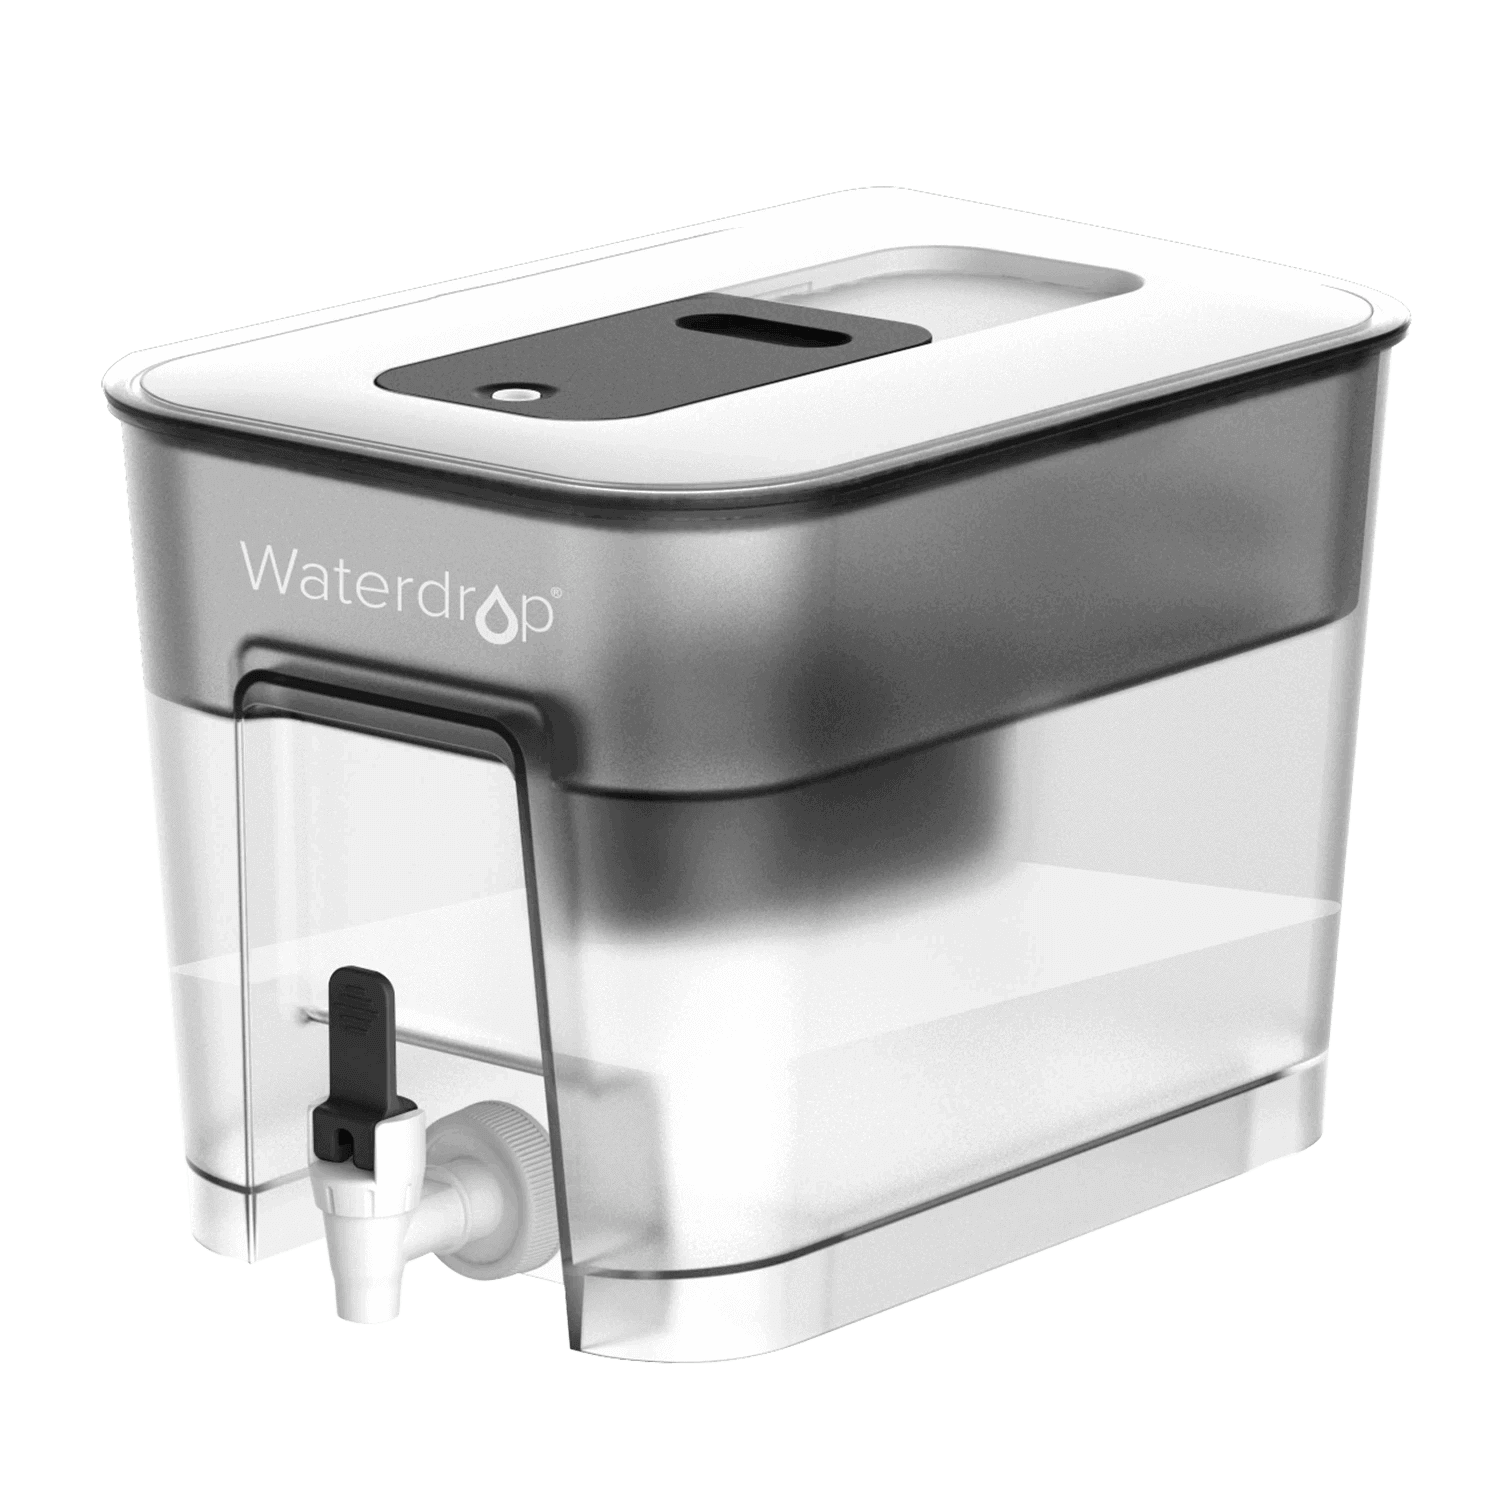 Water Filter Dispenser with 1 Filter